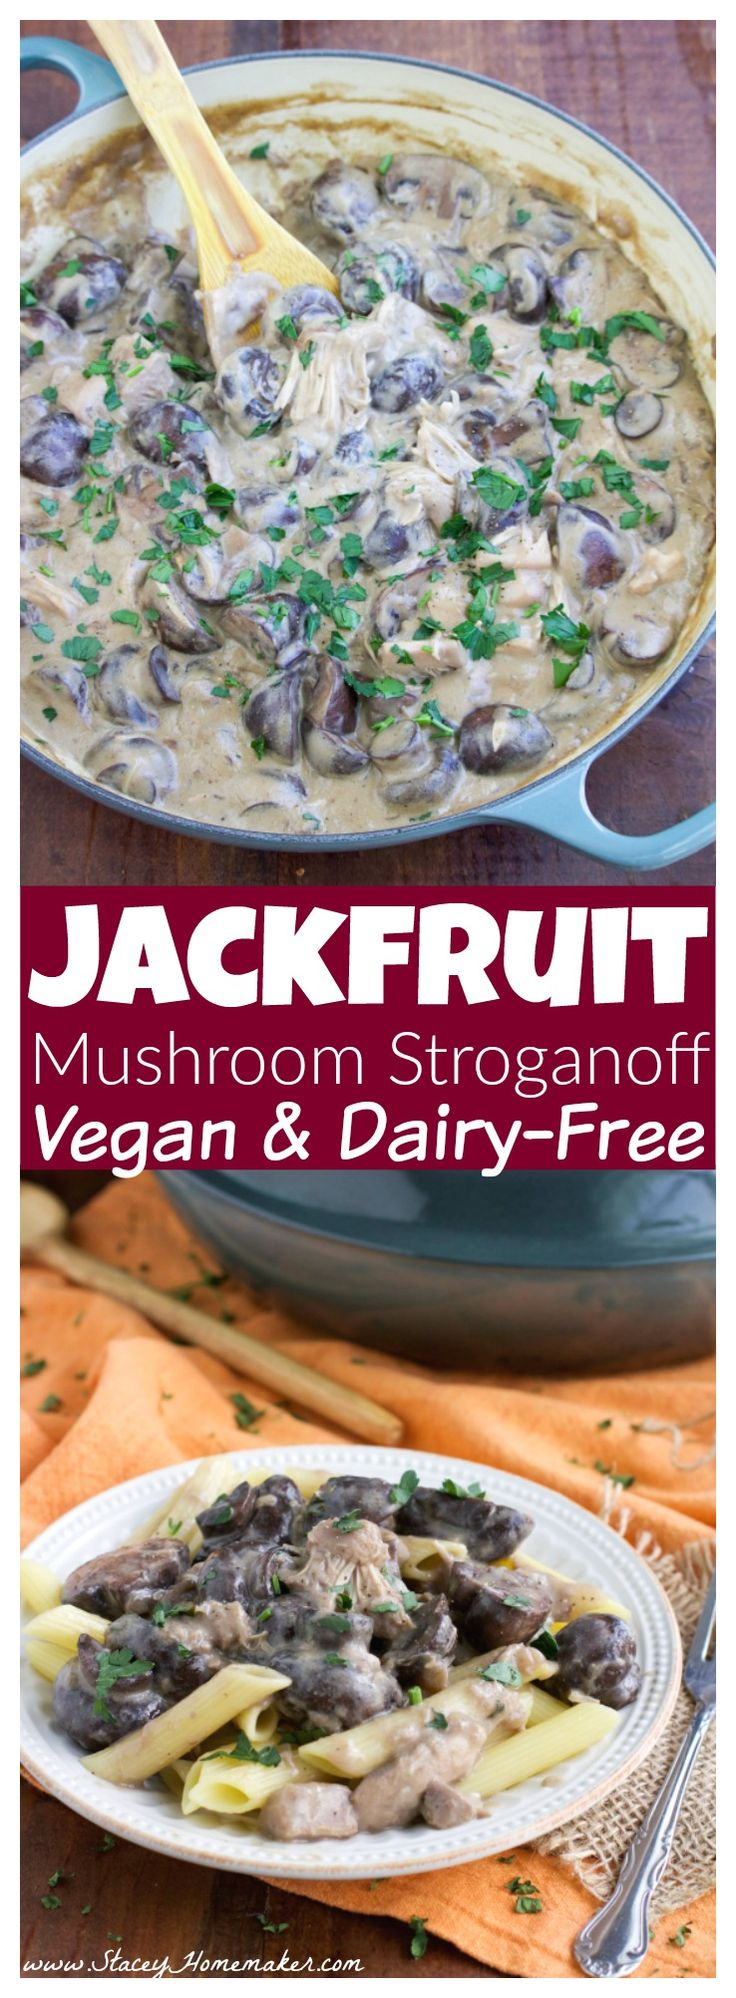 Vegan jackfruit mushroom stroganoff has the creamiest sauce that coats every bite of this mushroom-loaded dish! The shredded jackfruit takes the place of beef chunks and it's oh-so-satisfying. My husband loves it so much that he requested it twice in one week! Vegan, & dairy-free.